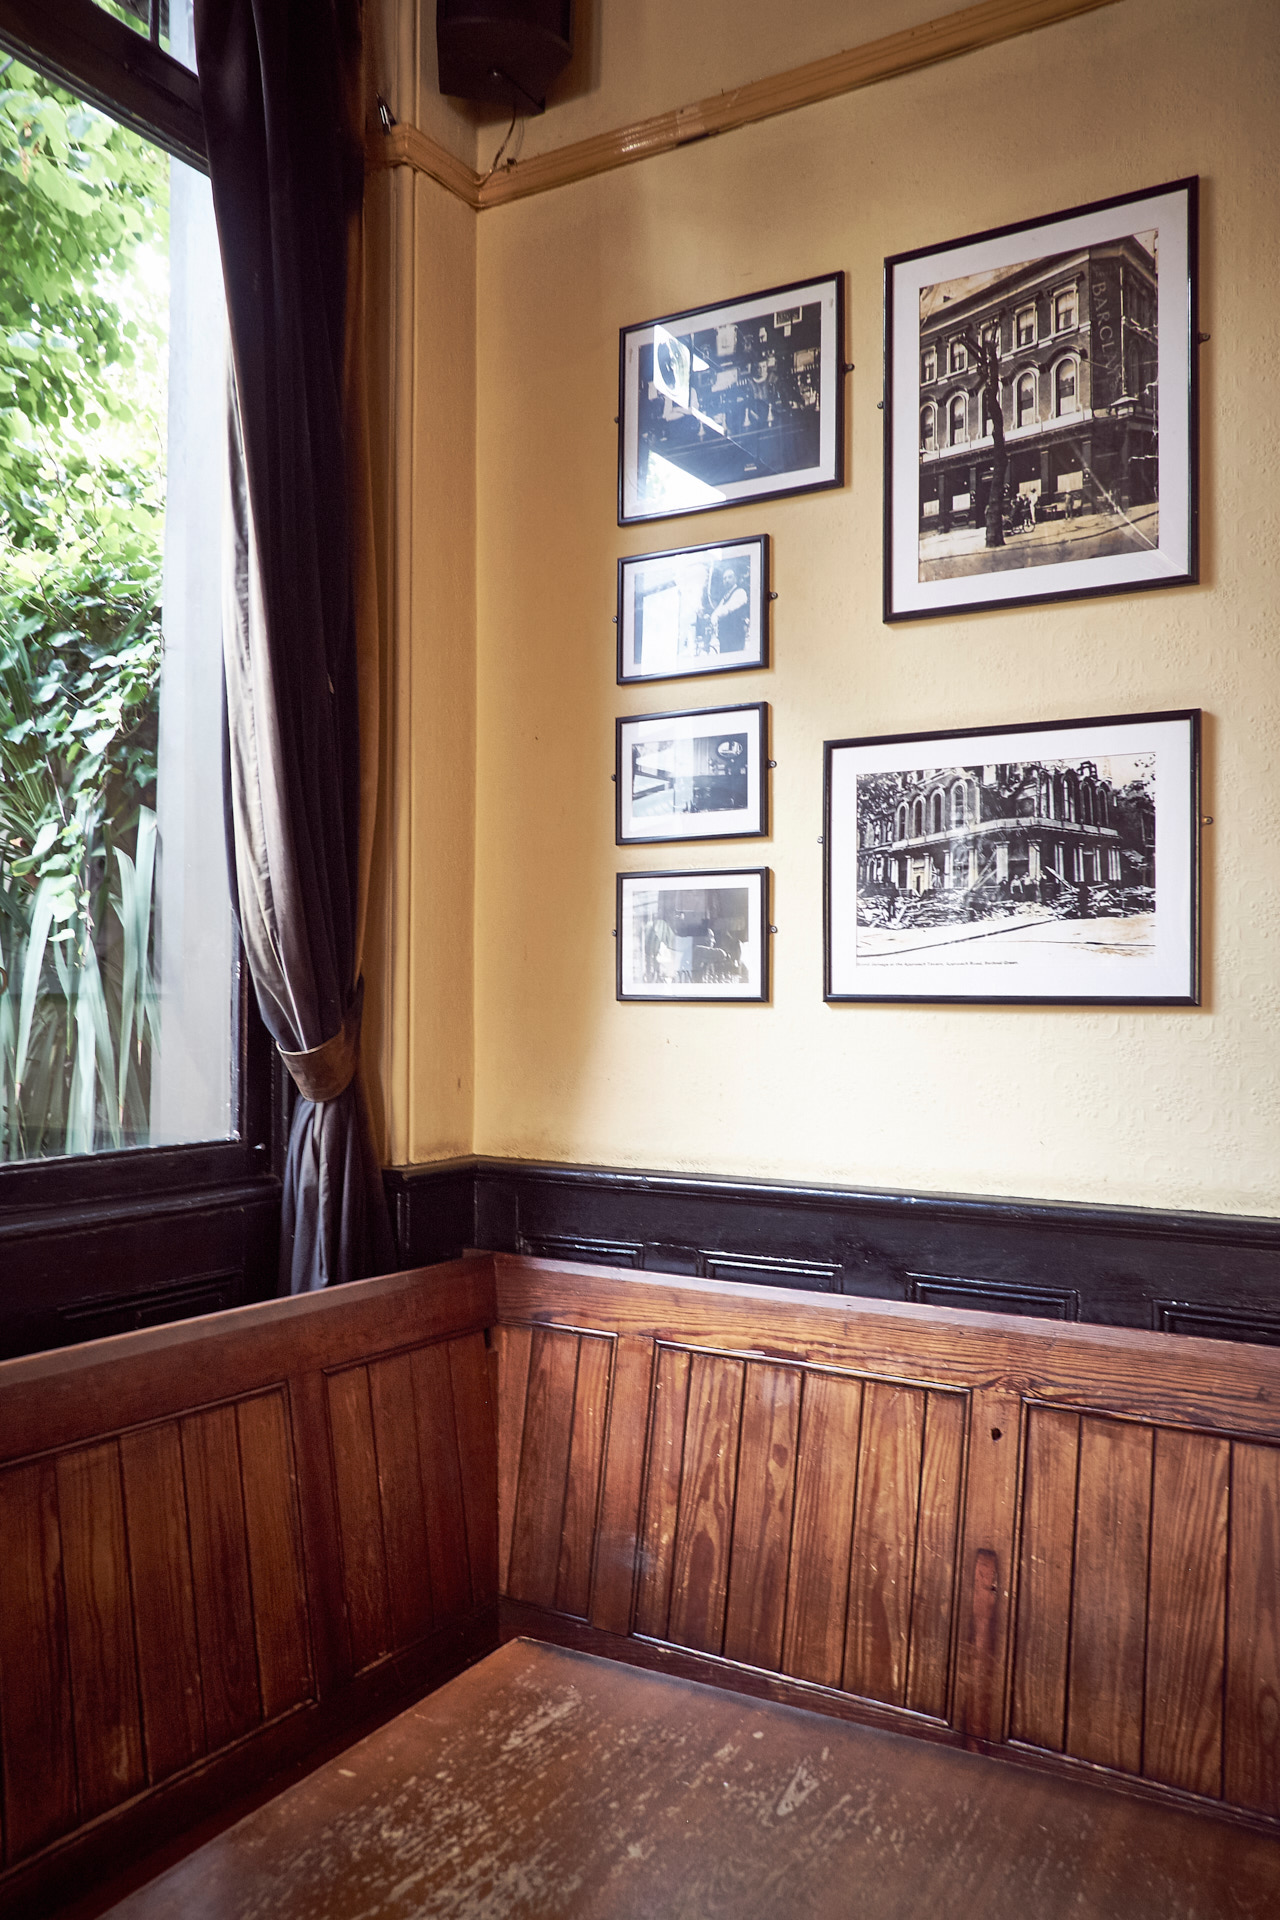 The pub has a collection of historical photos from the area.